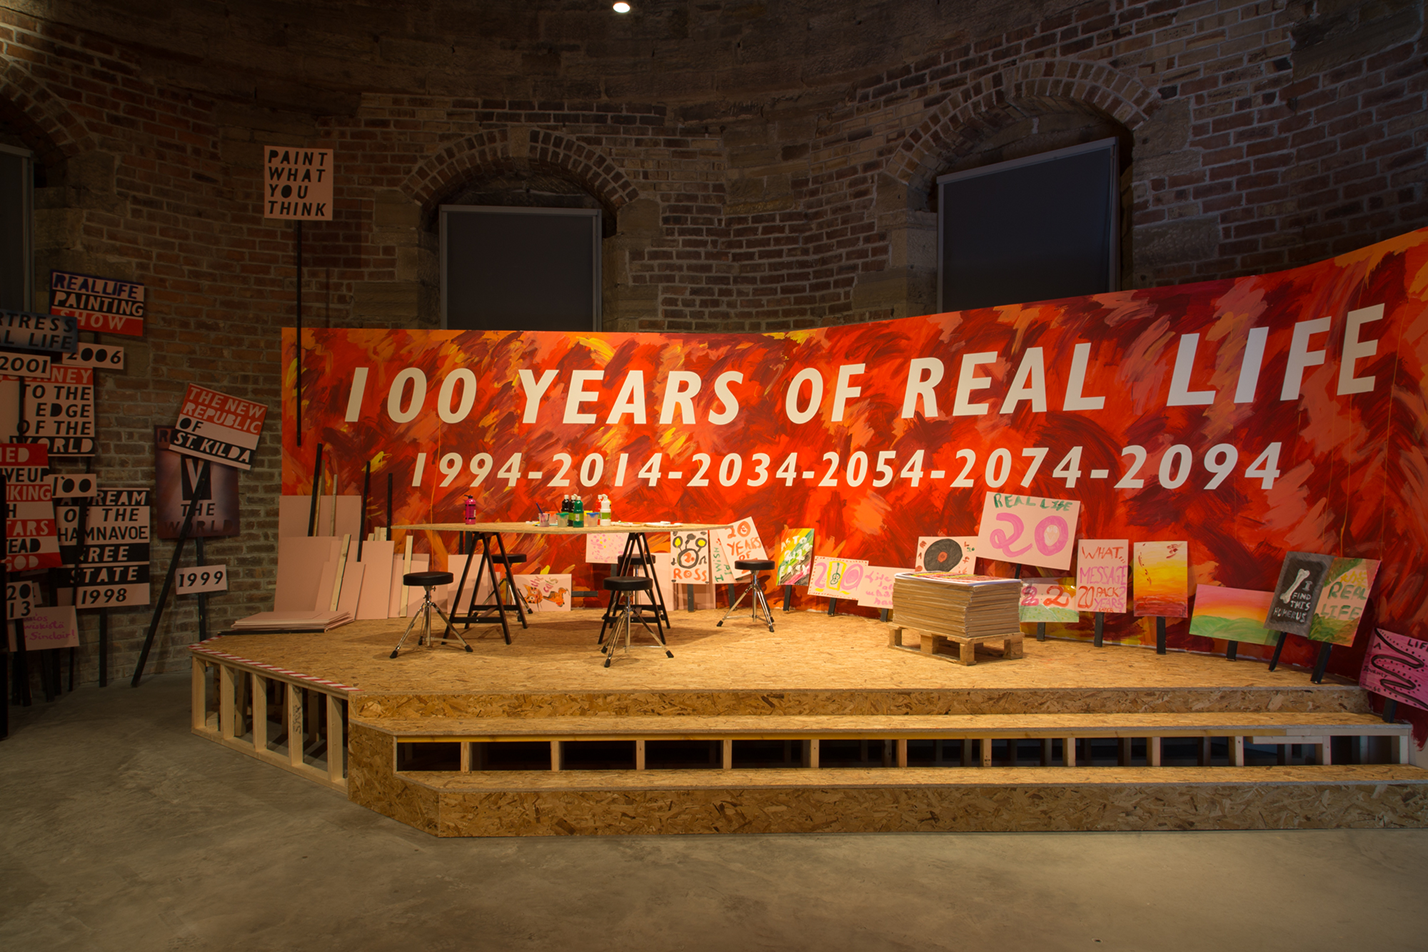 Ross Sinclair, *20 Years of Real Life*, installation view, 2014. Photo by Tom Nolan.